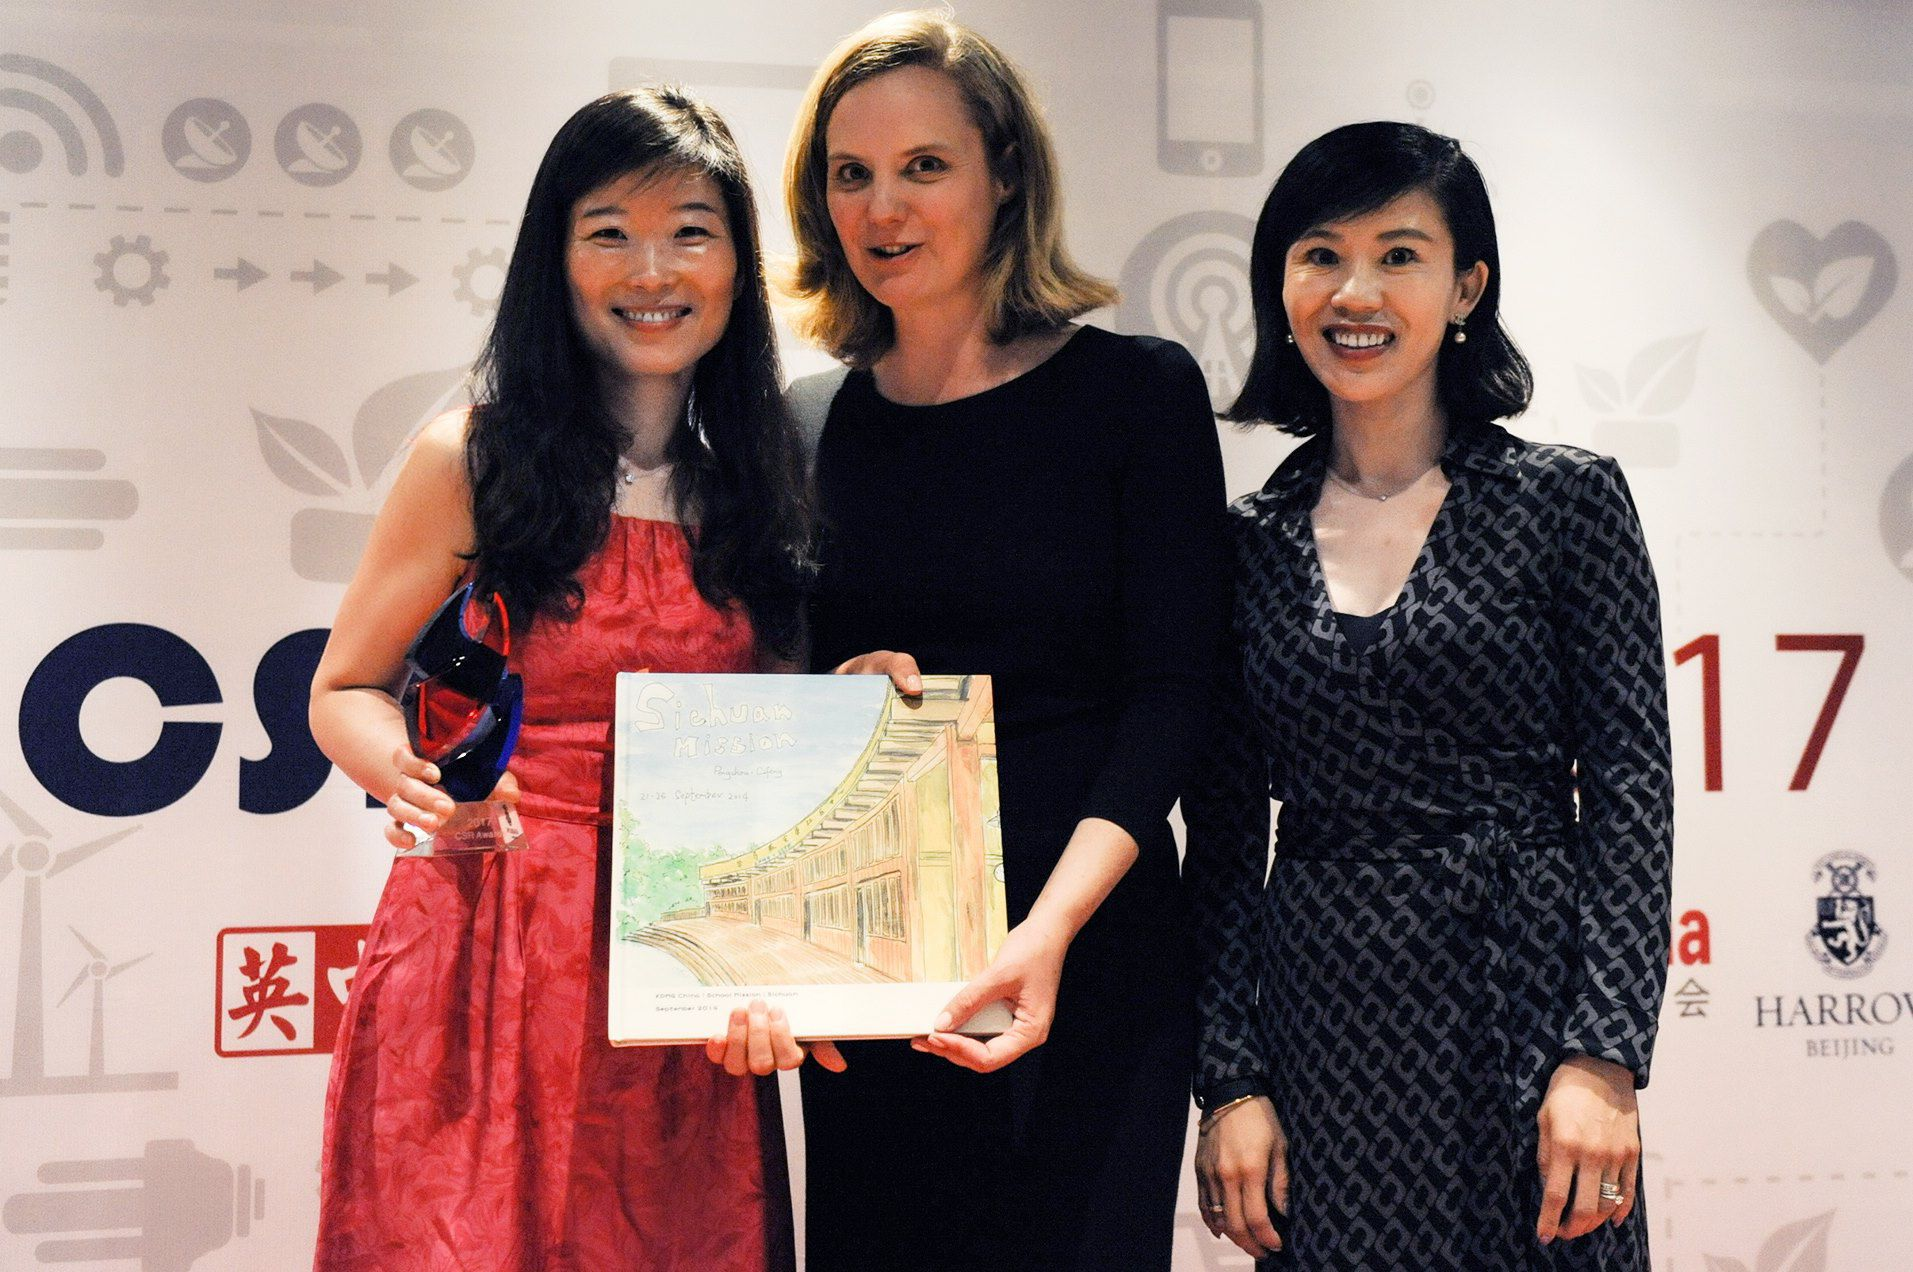 Daisy Shen (left) and Rachel Layburn (right), partners of KPMG China, and Clare Pearson (middle), chair of the British Chamber of Commerce in China, at the awards ceremony